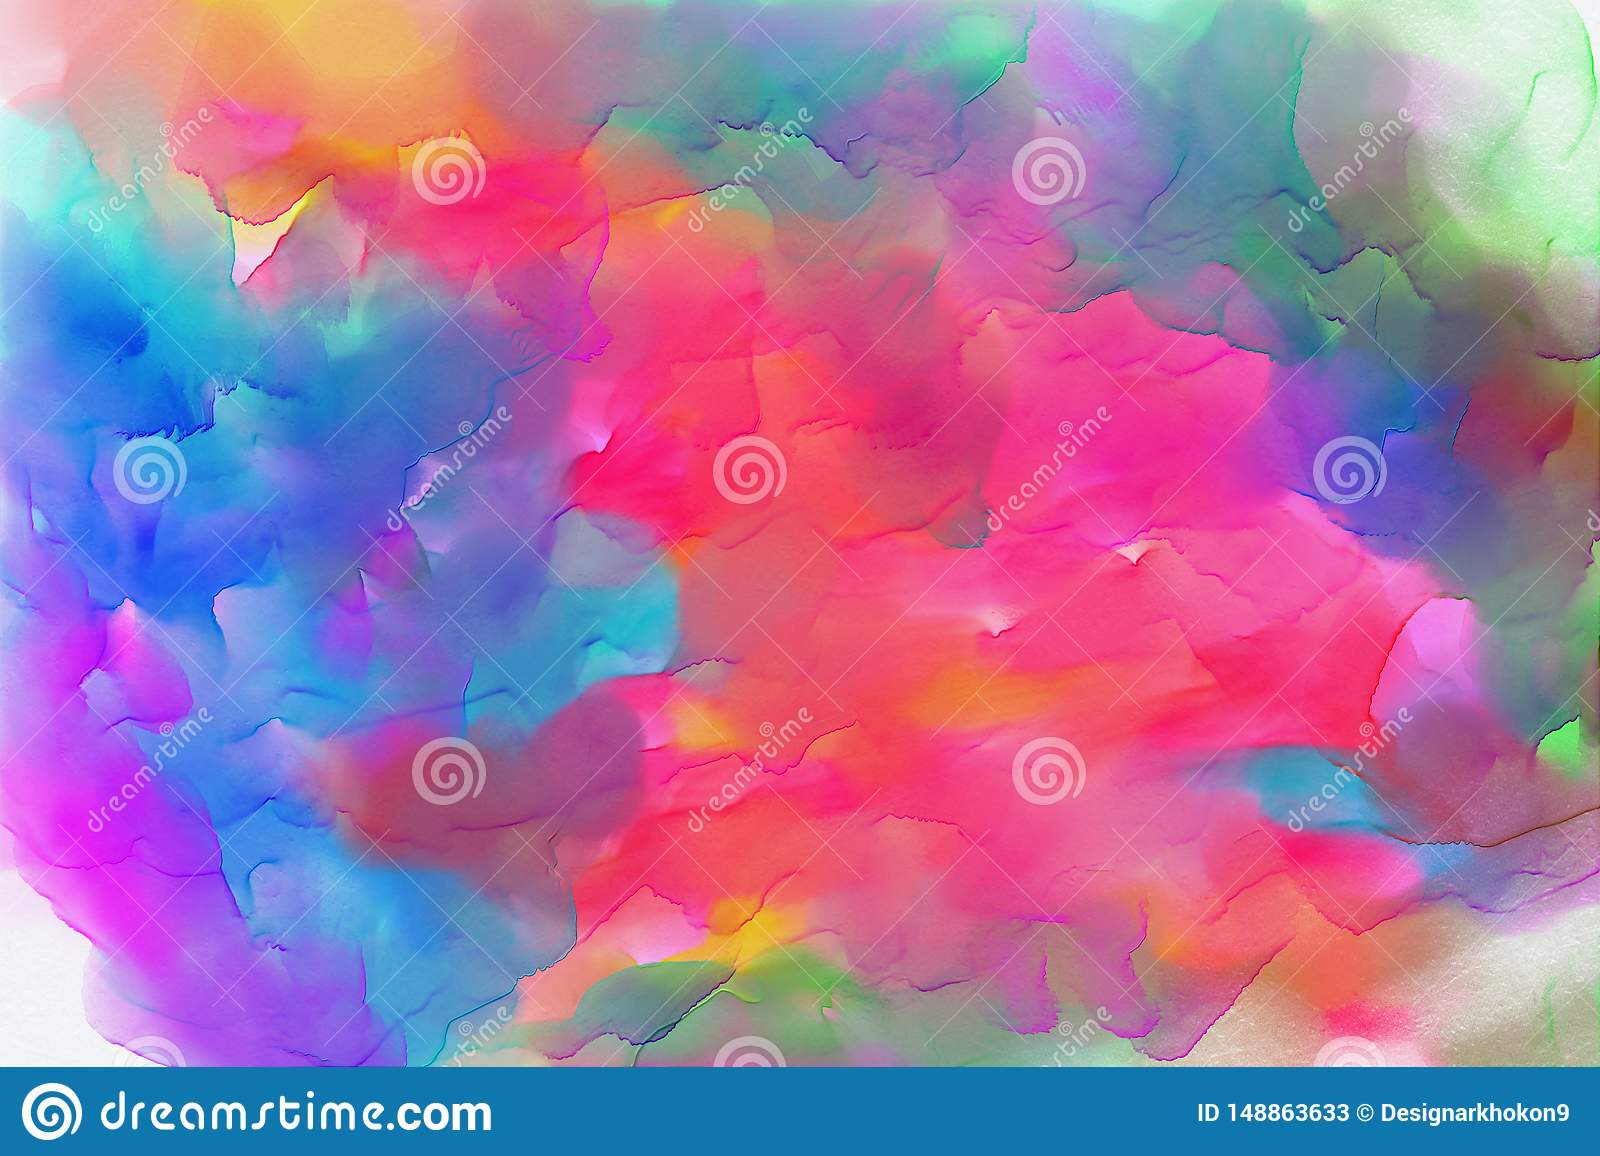 Unduh 85 Background Hd Quality Picture Gratis